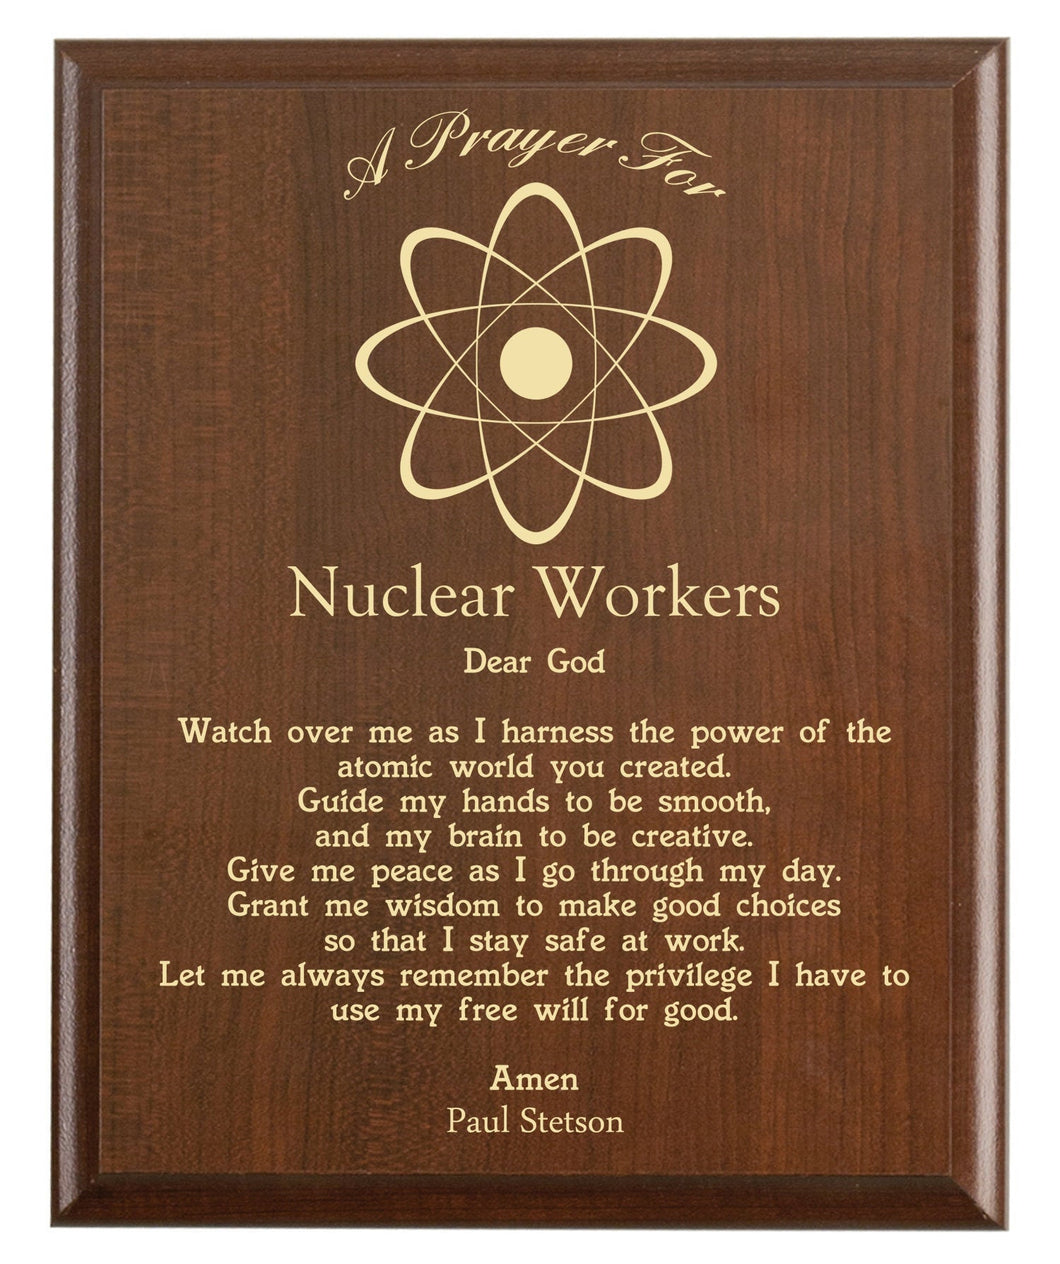 Christian prayer for a nuclear worker with industry logo and free personalization. Cherry finish with laser engraved text.